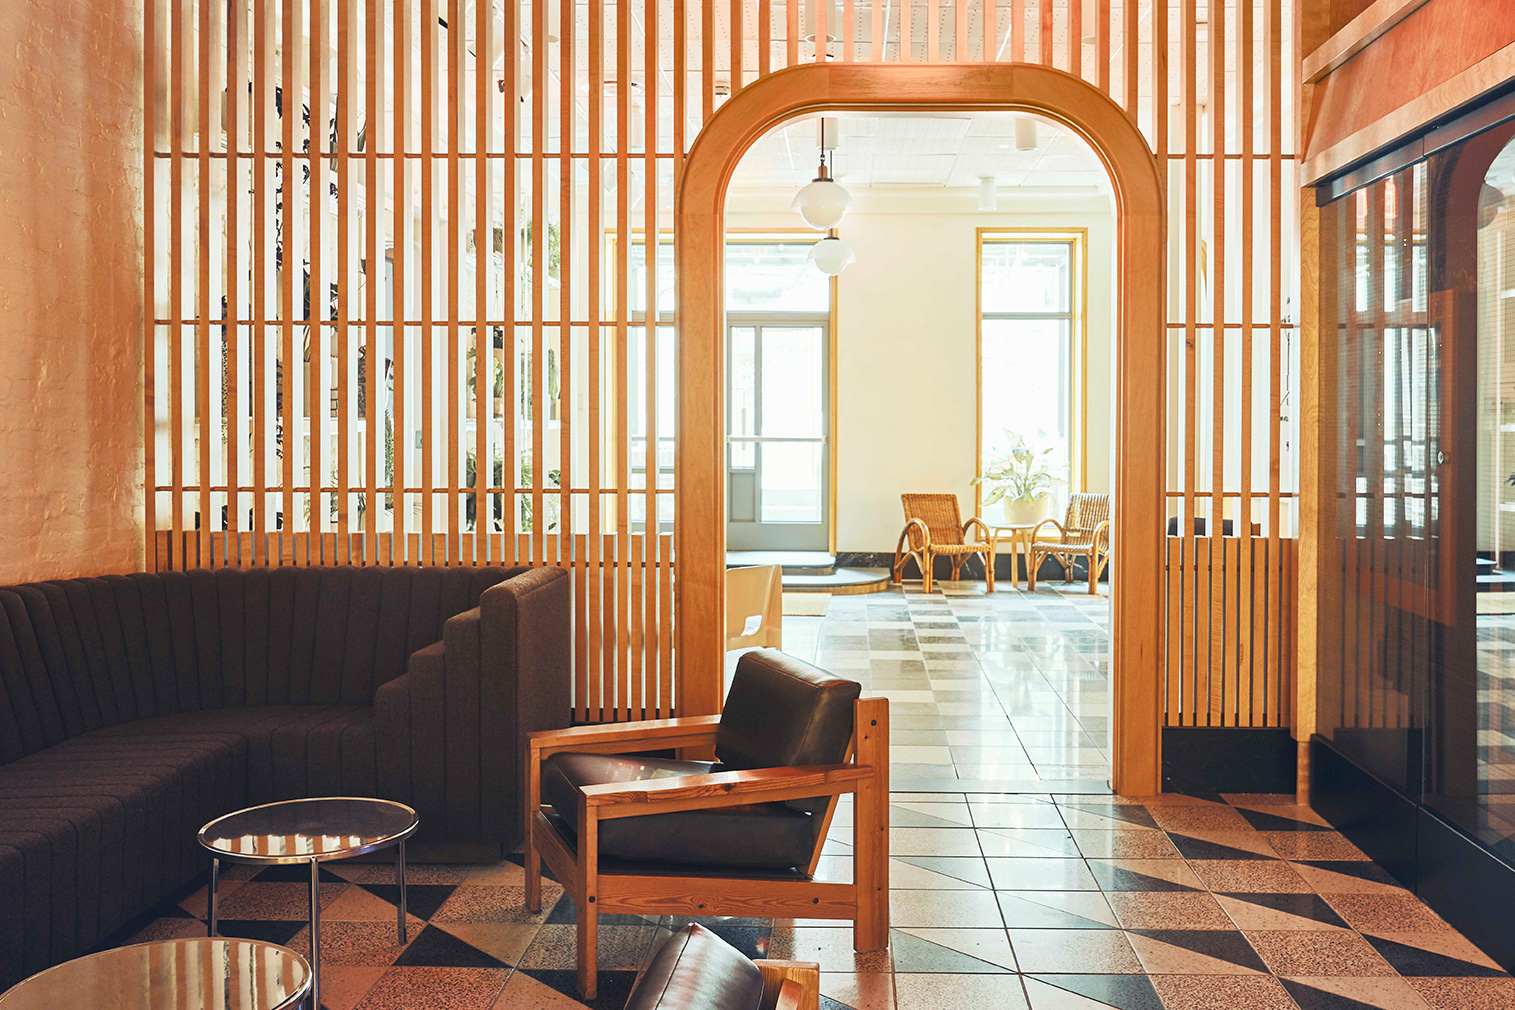 New York's Sister City hotel has bento box-inspired bedrooms